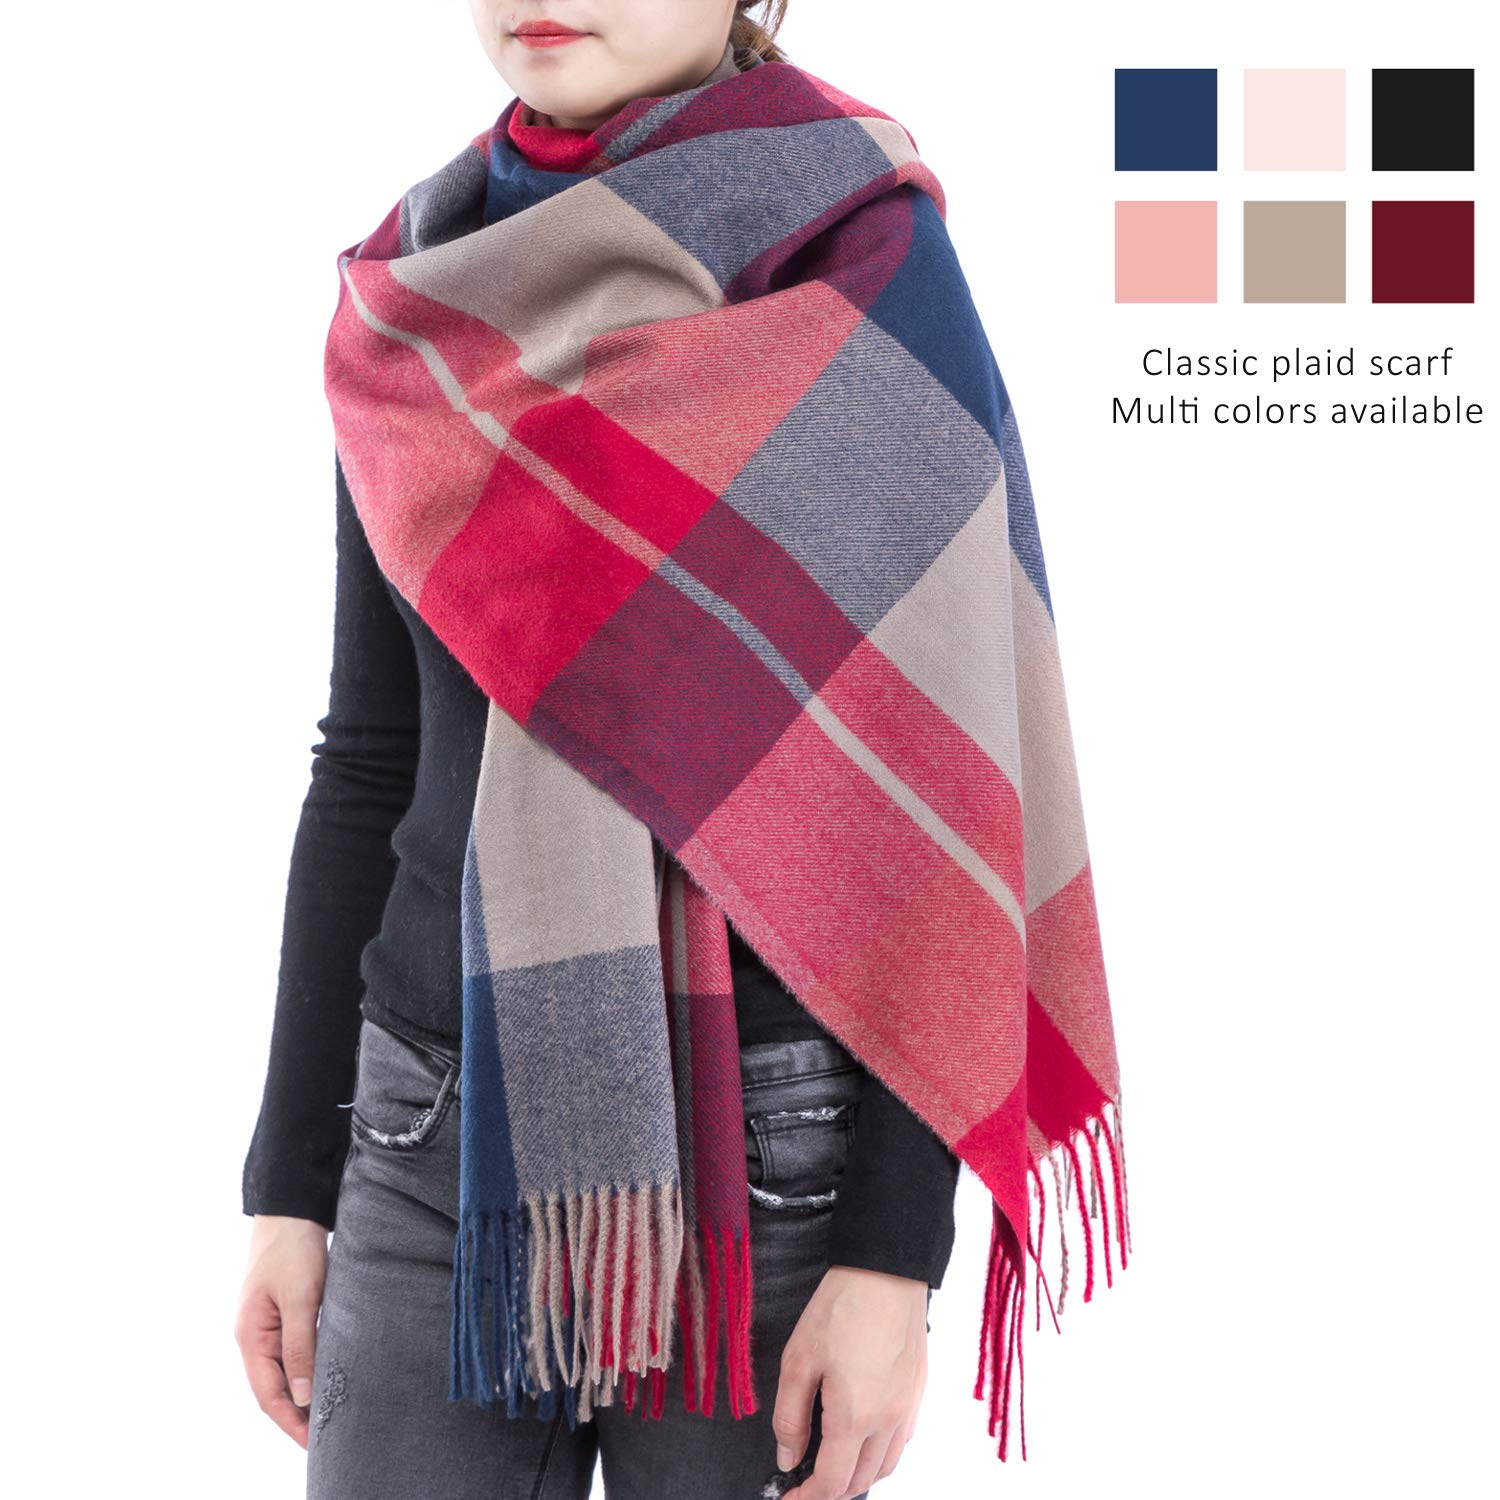 Cashmere Scarf Blanket Plaid Scarf for Women-Tartan Scarf Cashmere Wrap Deepink